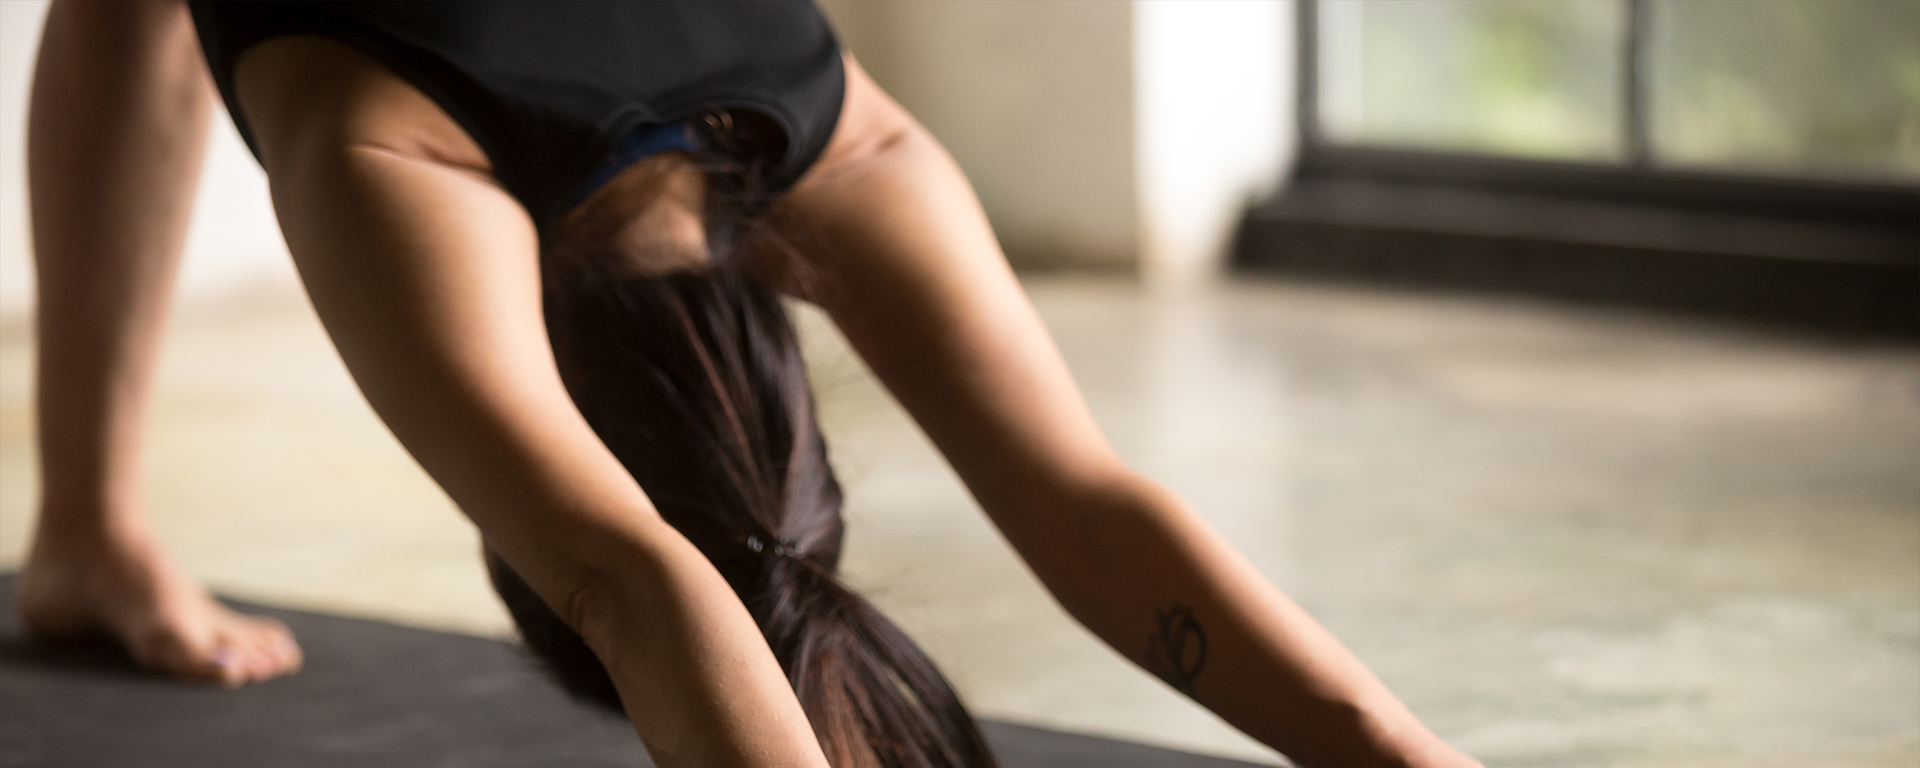 Yoga for People with Low Back Pain